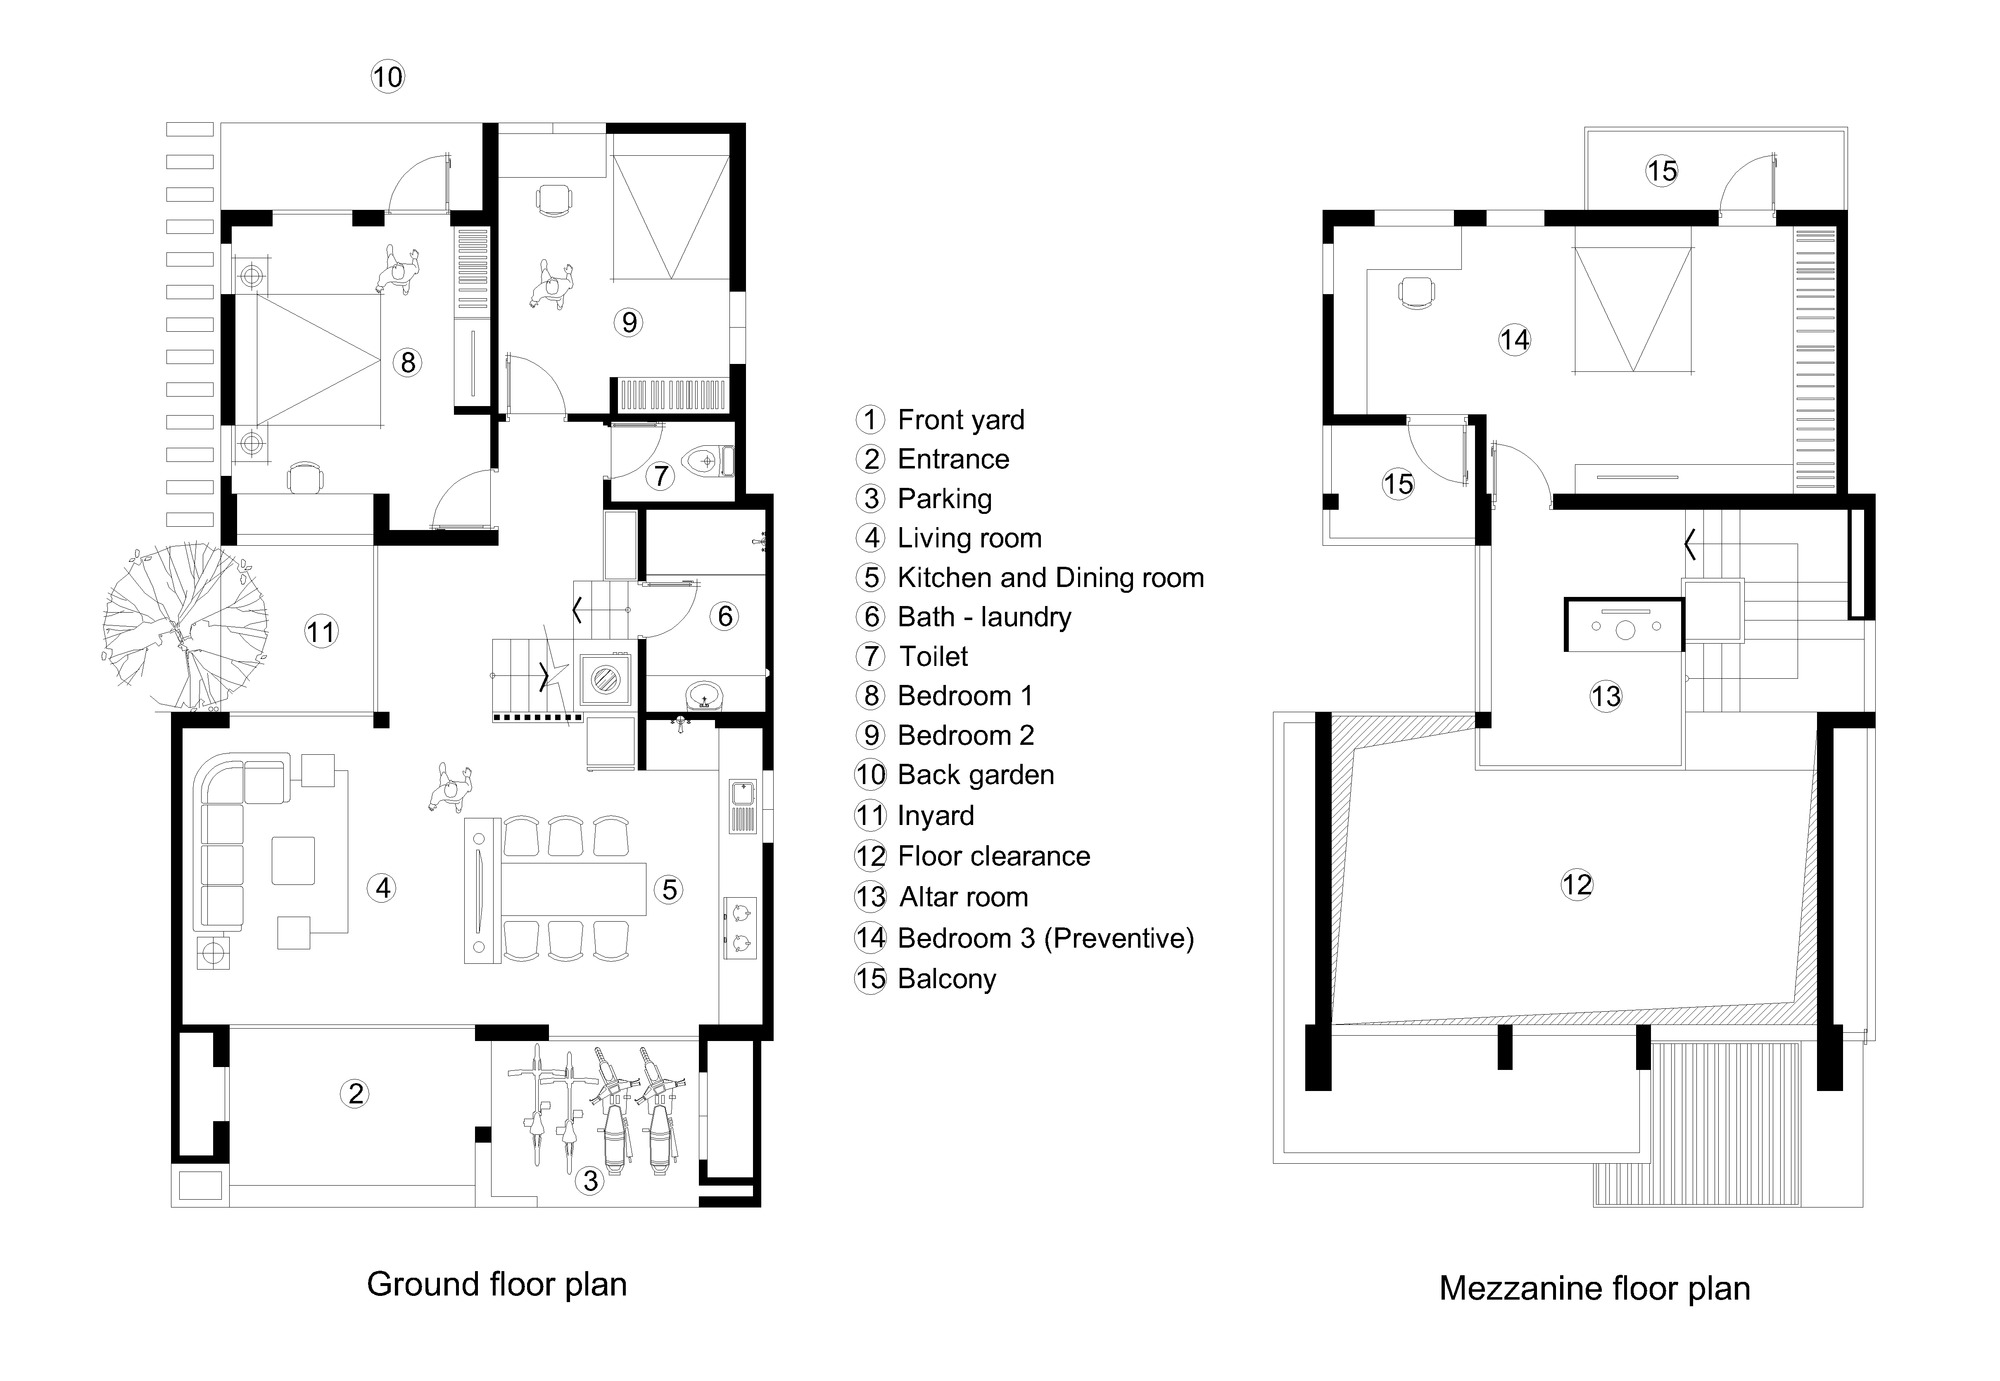 Gallery of new house r u arch 23 for Mezzanine floor plan